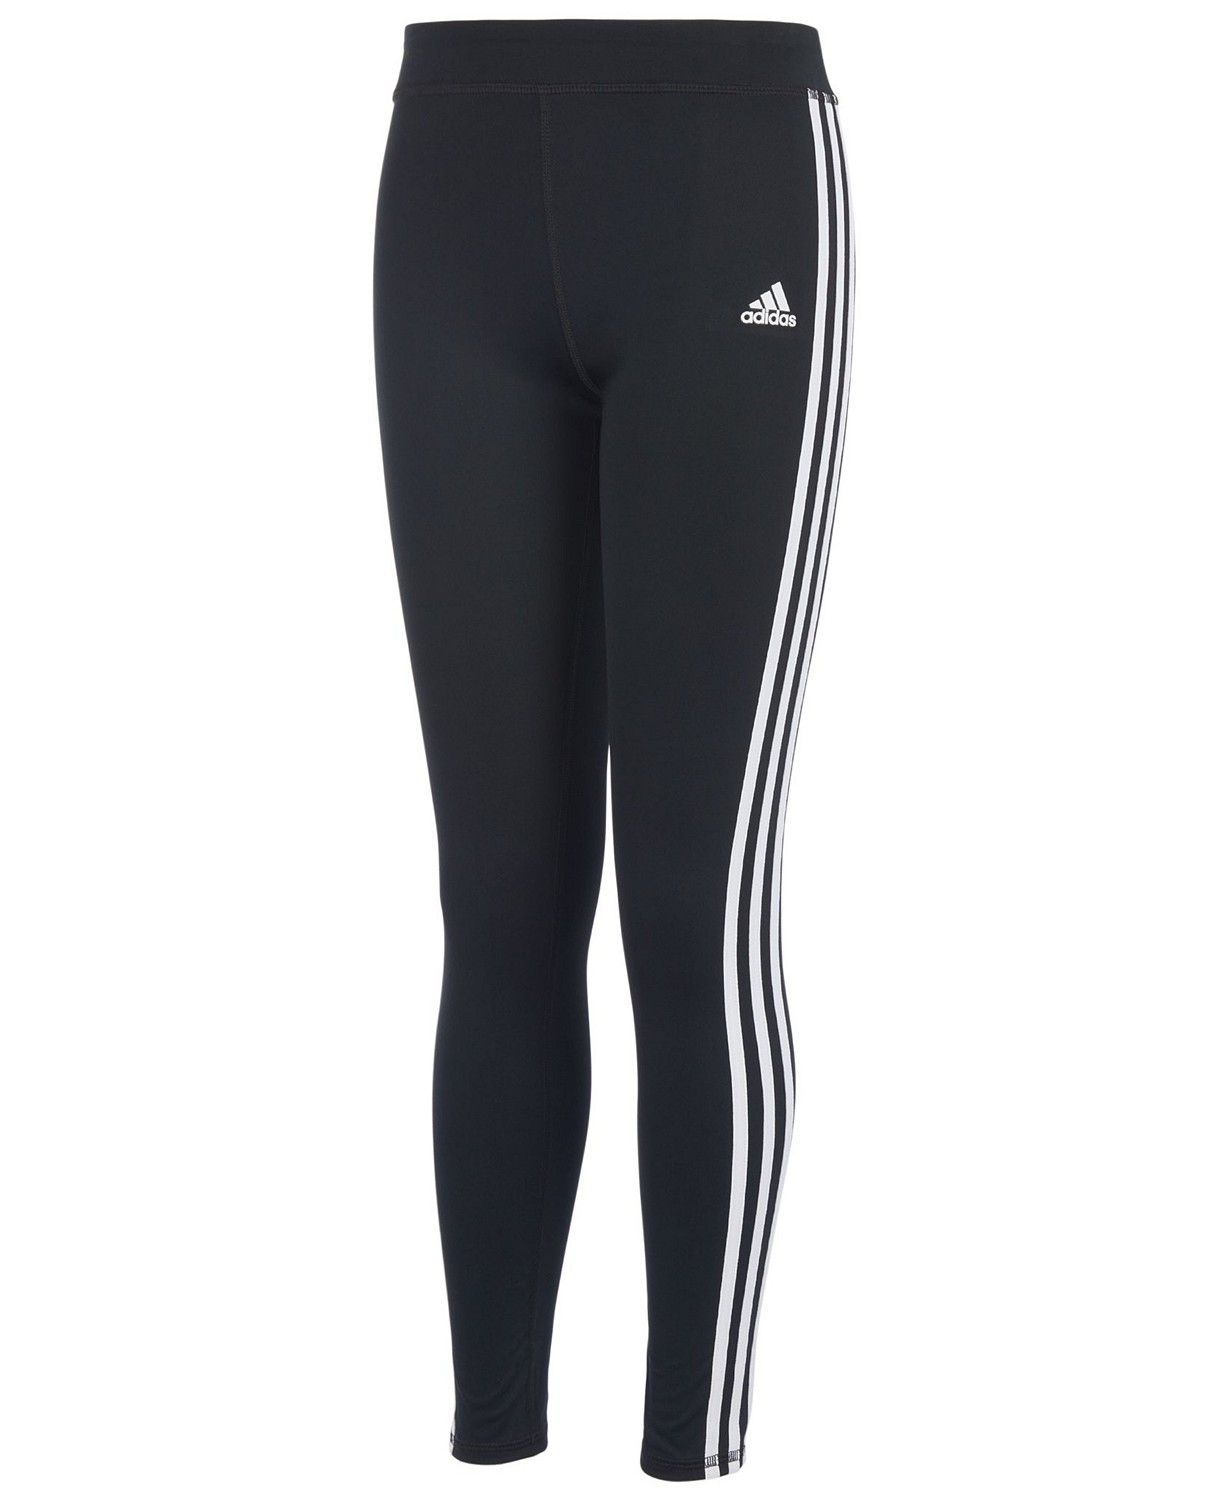 Big Girls Full-Length Leggings by Adidas, available on macys.com for $35 Karlie Kloss Pants SIMILAR PRODUCT